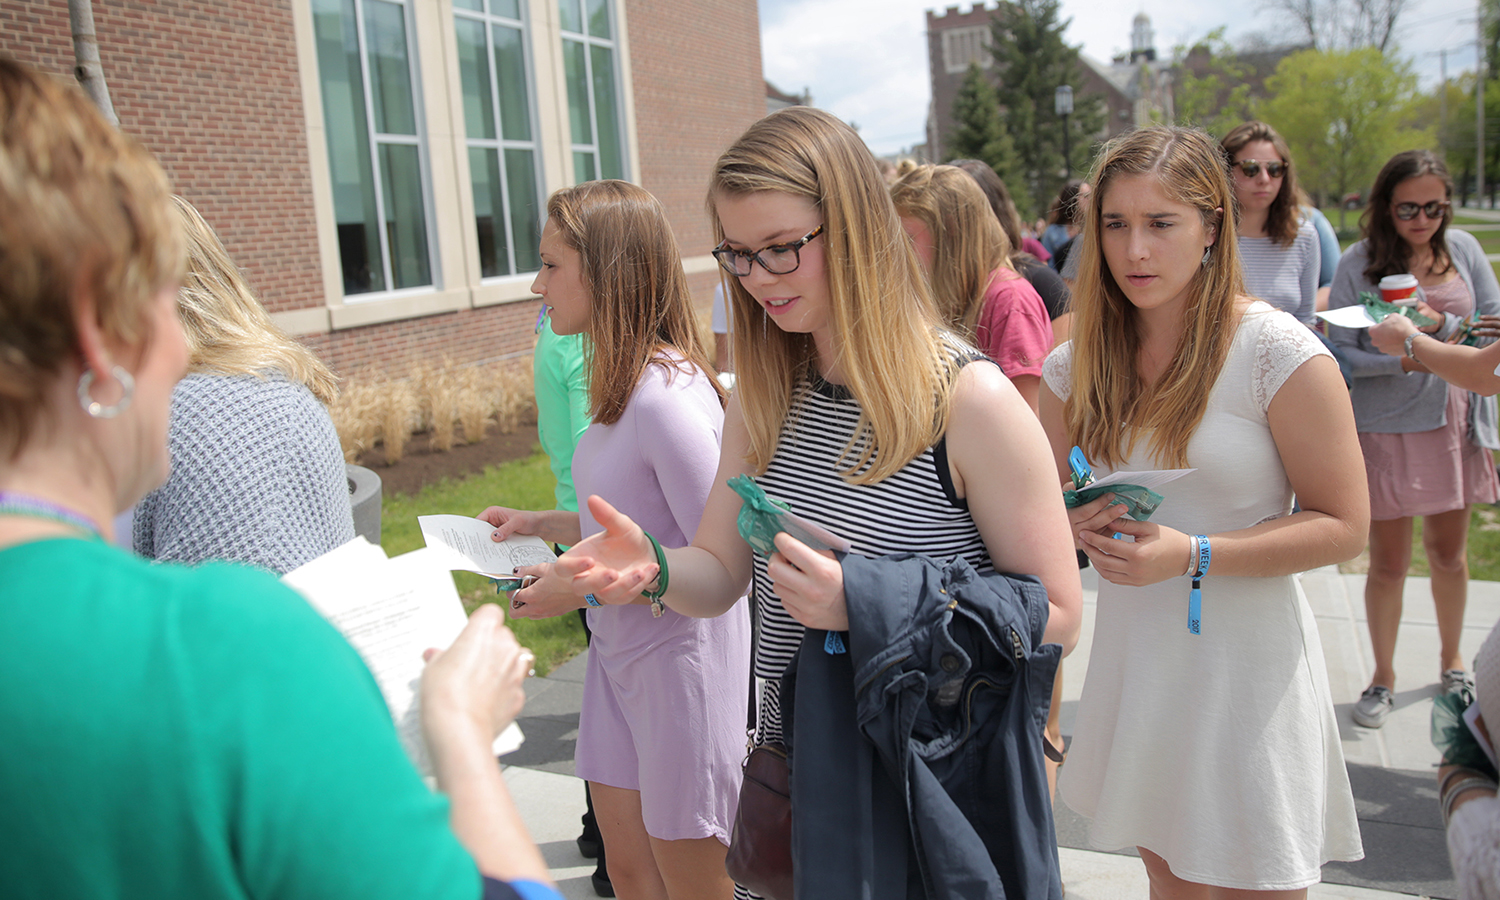 Emily Nason '17 and Stephnie Schmitz '17 receive a bracelet and the senior pine tree charm before the William Smith Senior Welcome Toast in the Gearan Center for the Performing Arts. The pine tree is in recognition of the College's nurseryman founder, William Smith.